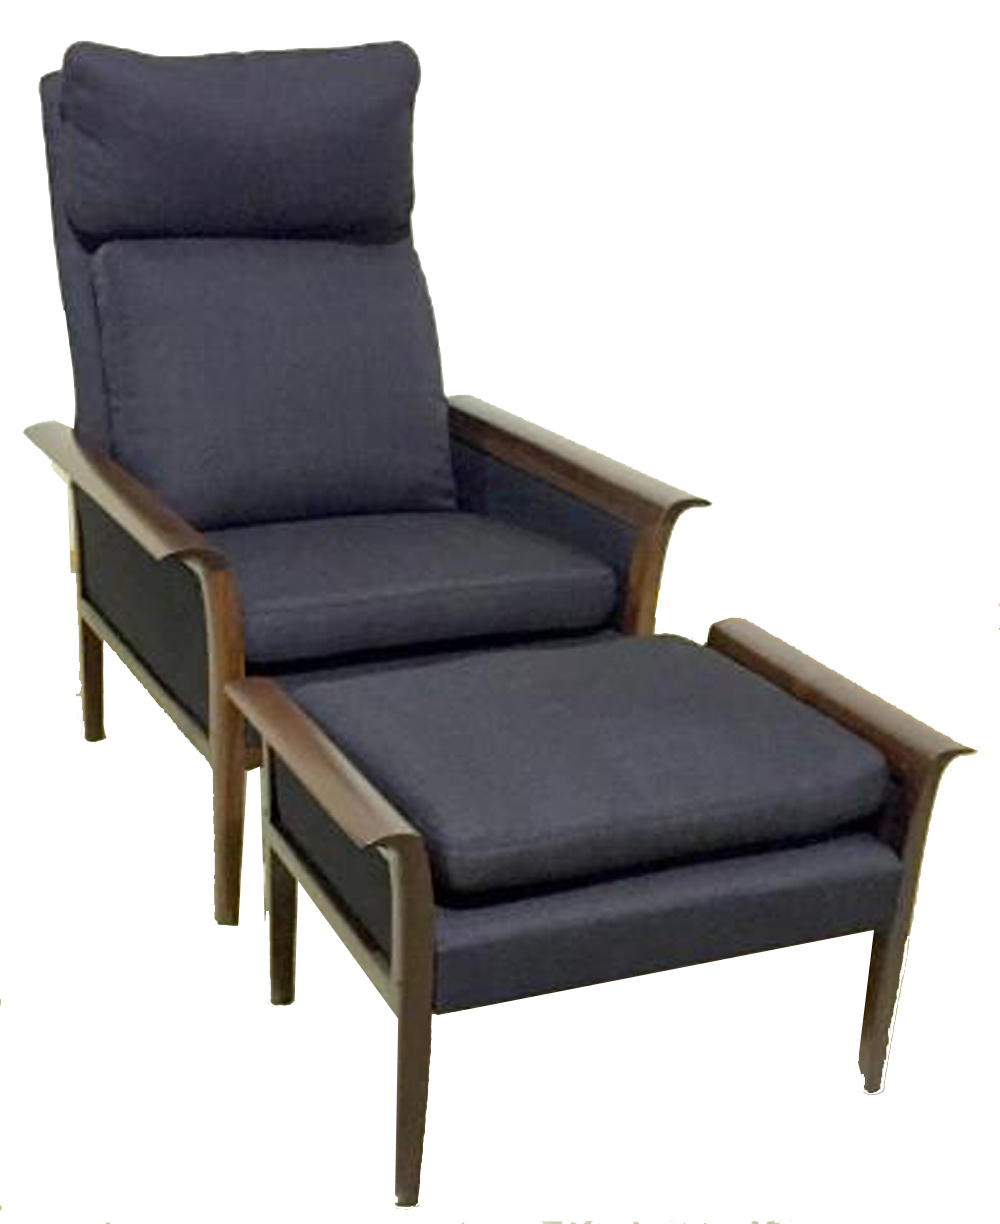 Vatne Mobler Rosewood Lounge Chair And Ottoman By Hans